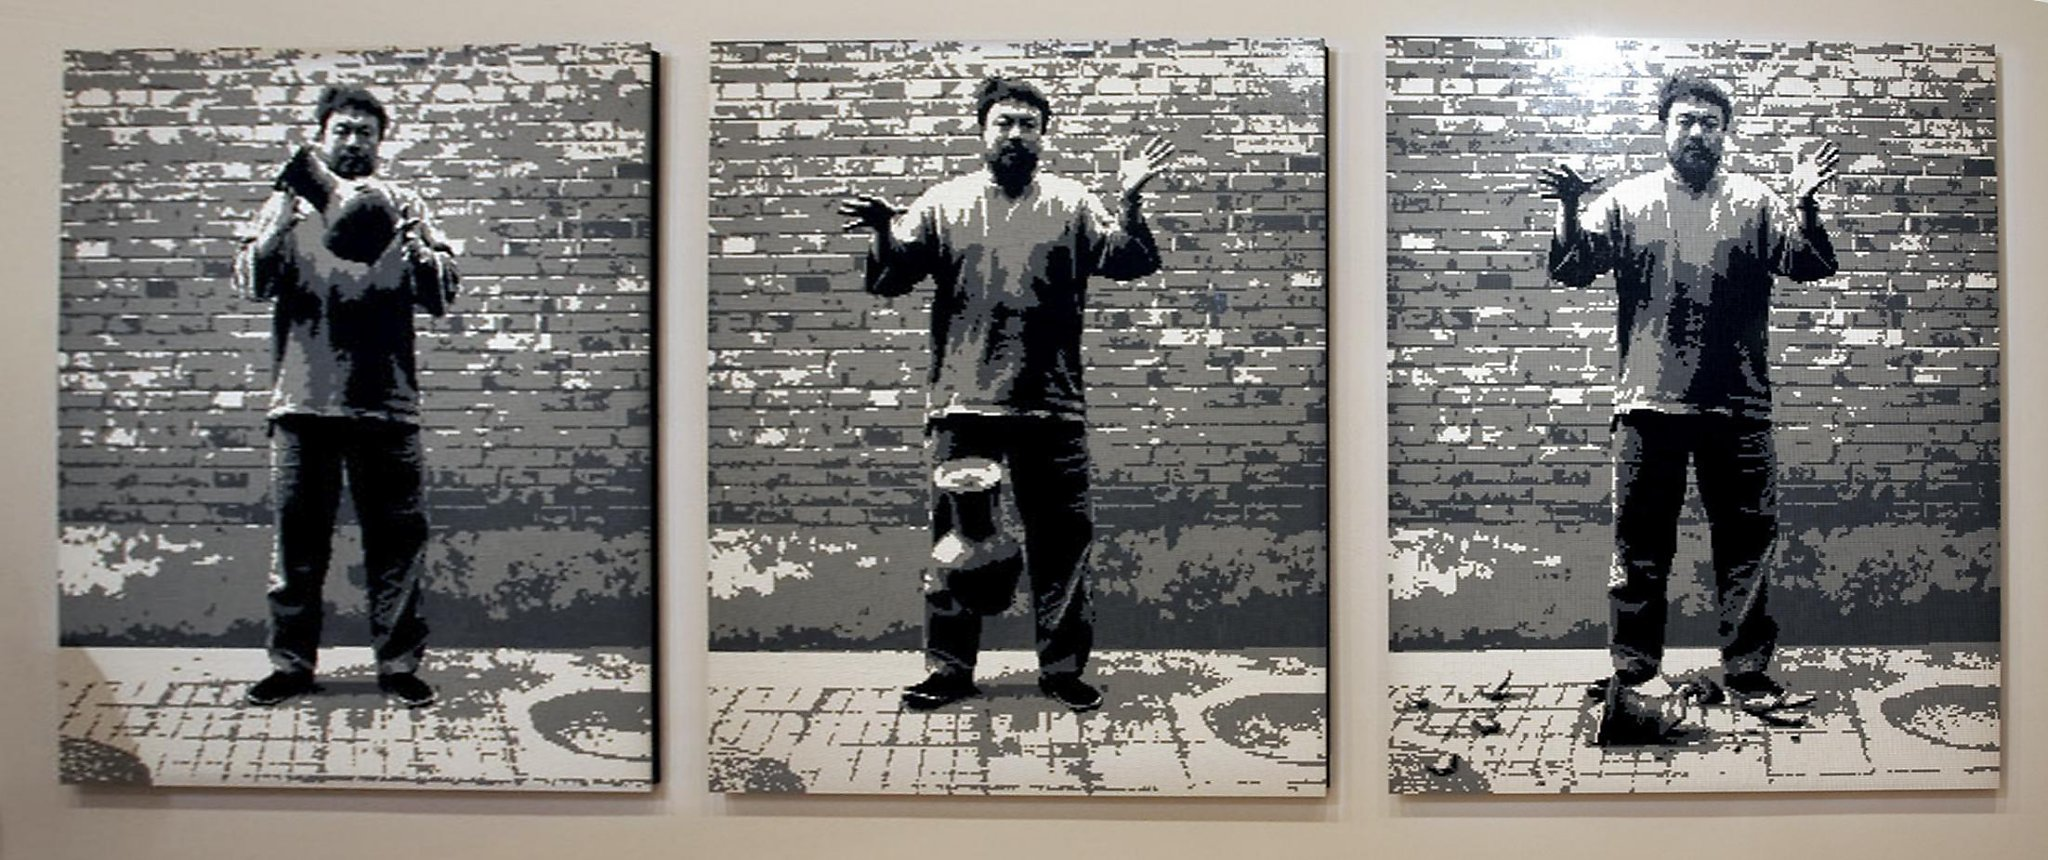 Ai weiwei uses legos in new overrated exhibit sfgate floridaeventfo Image collections